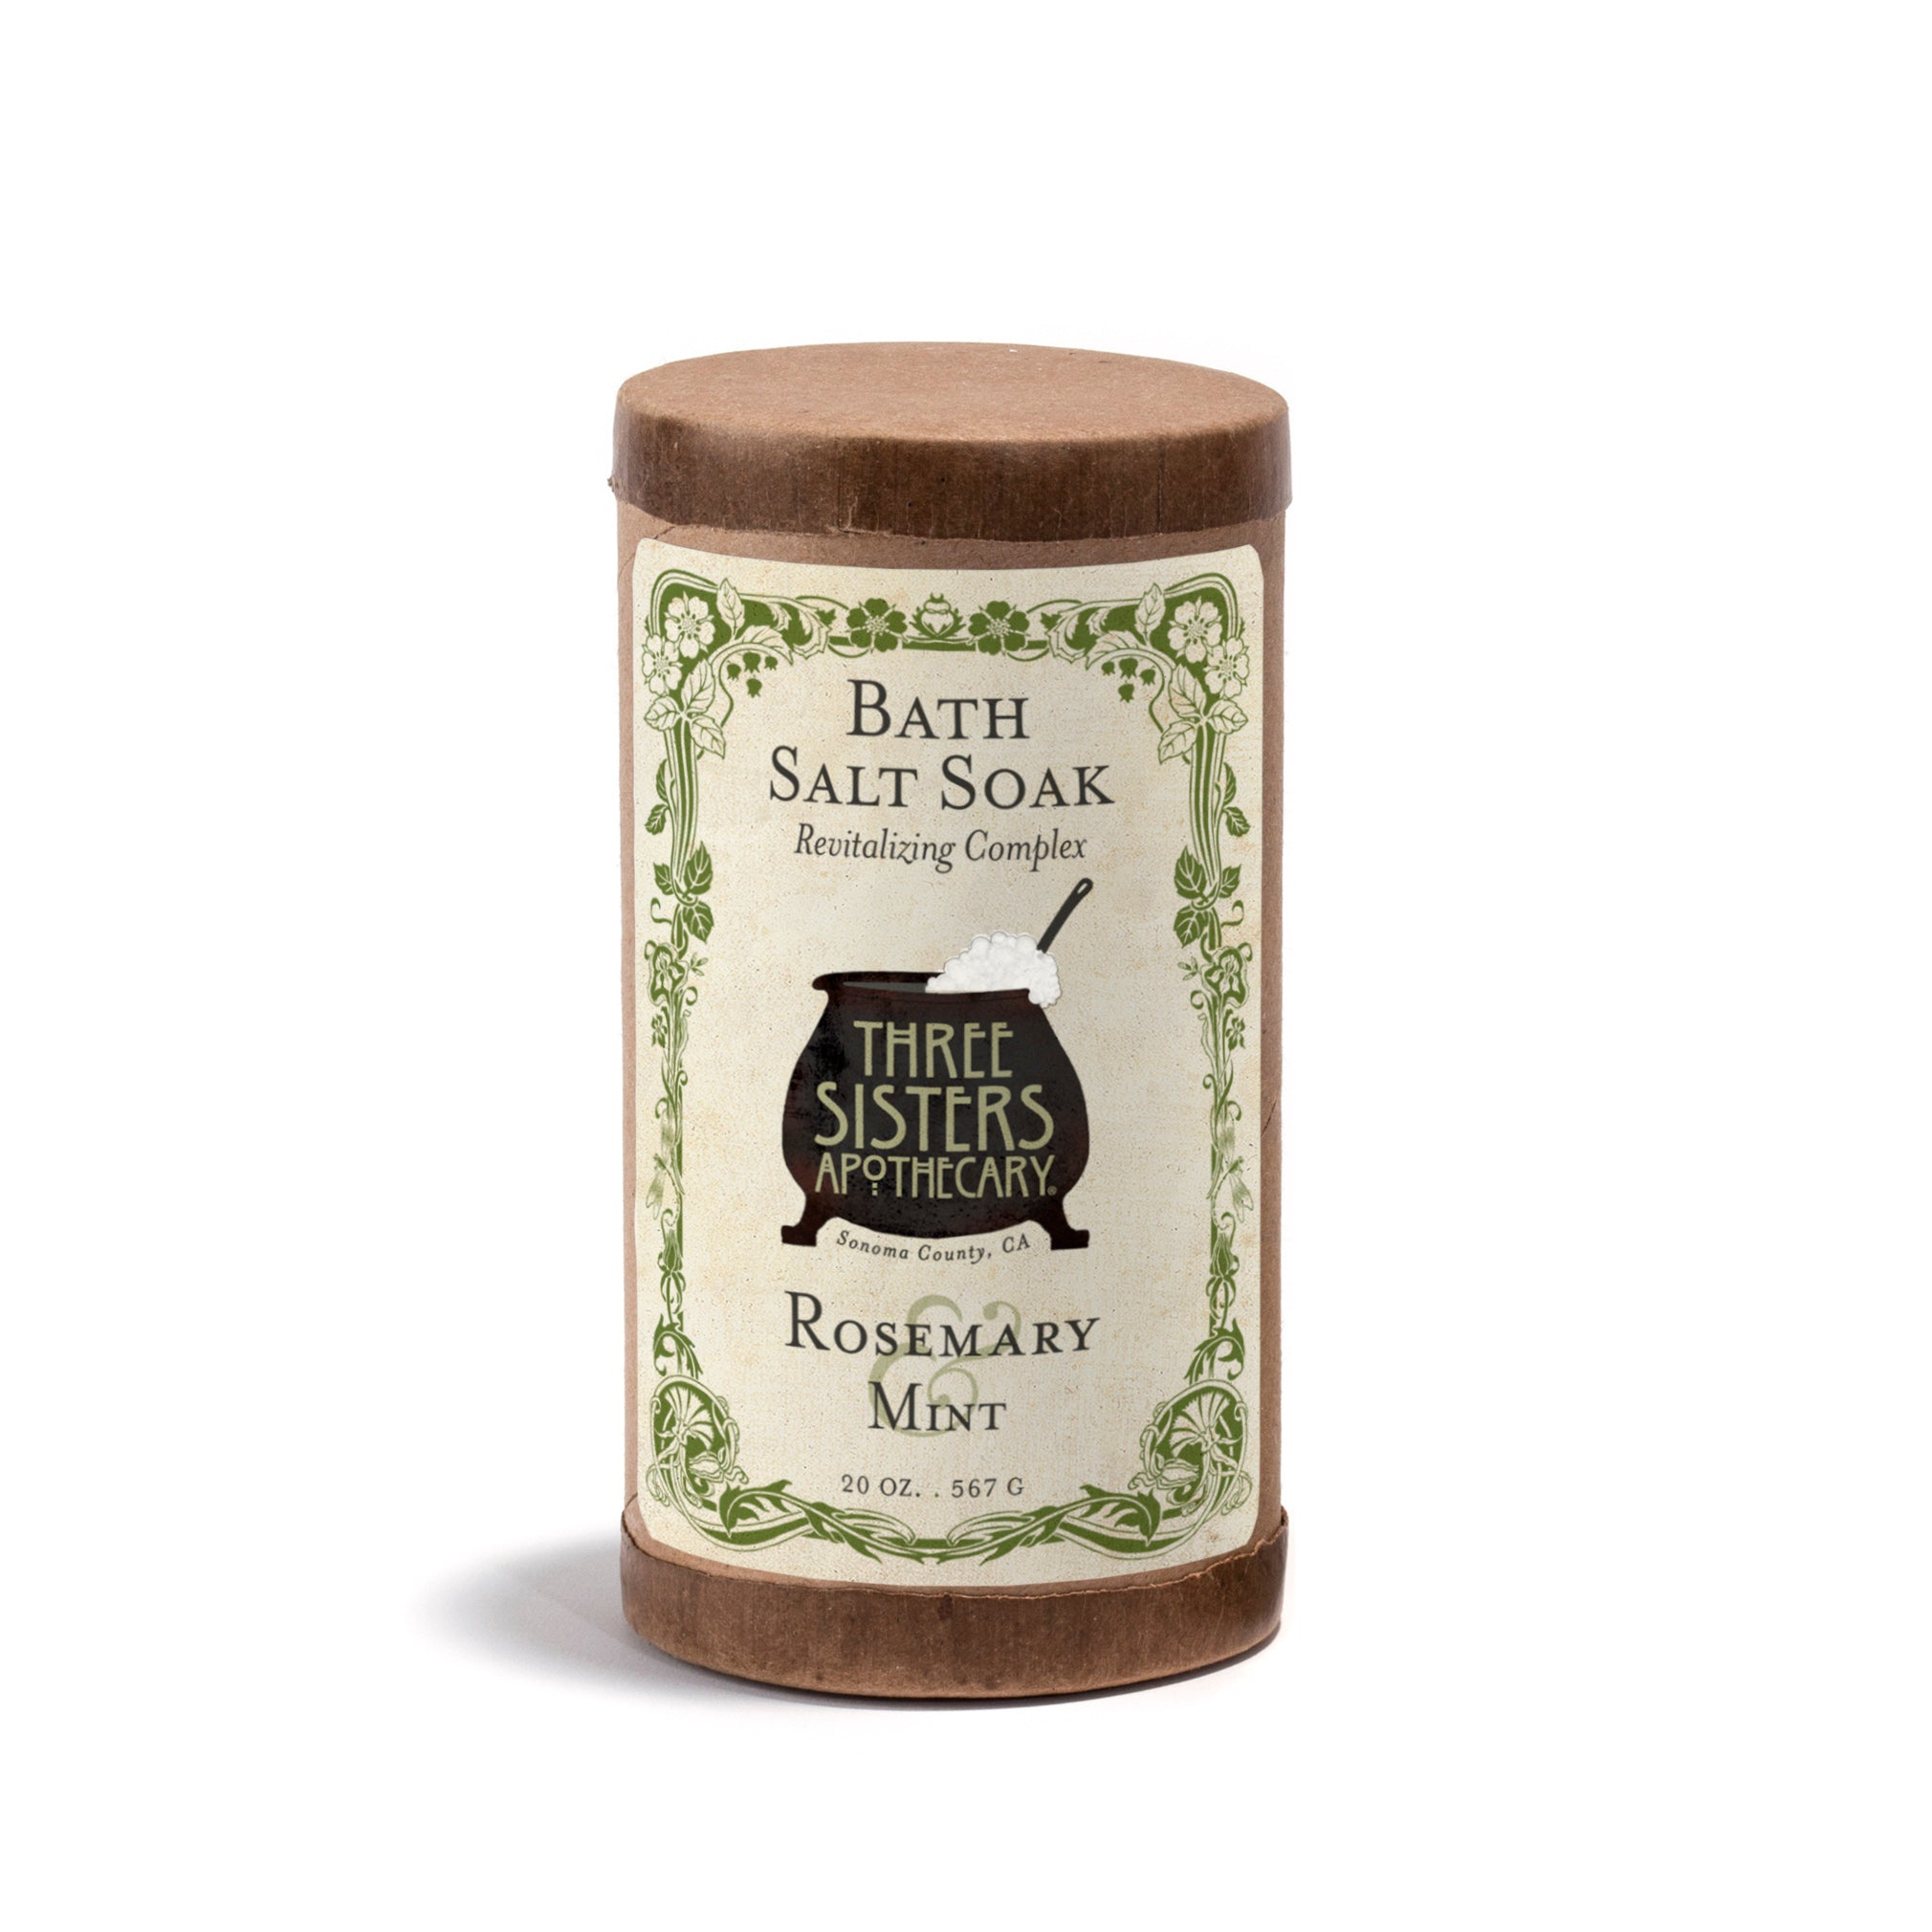 Rosemary & Mint Bath Salt Soak - 20 oz